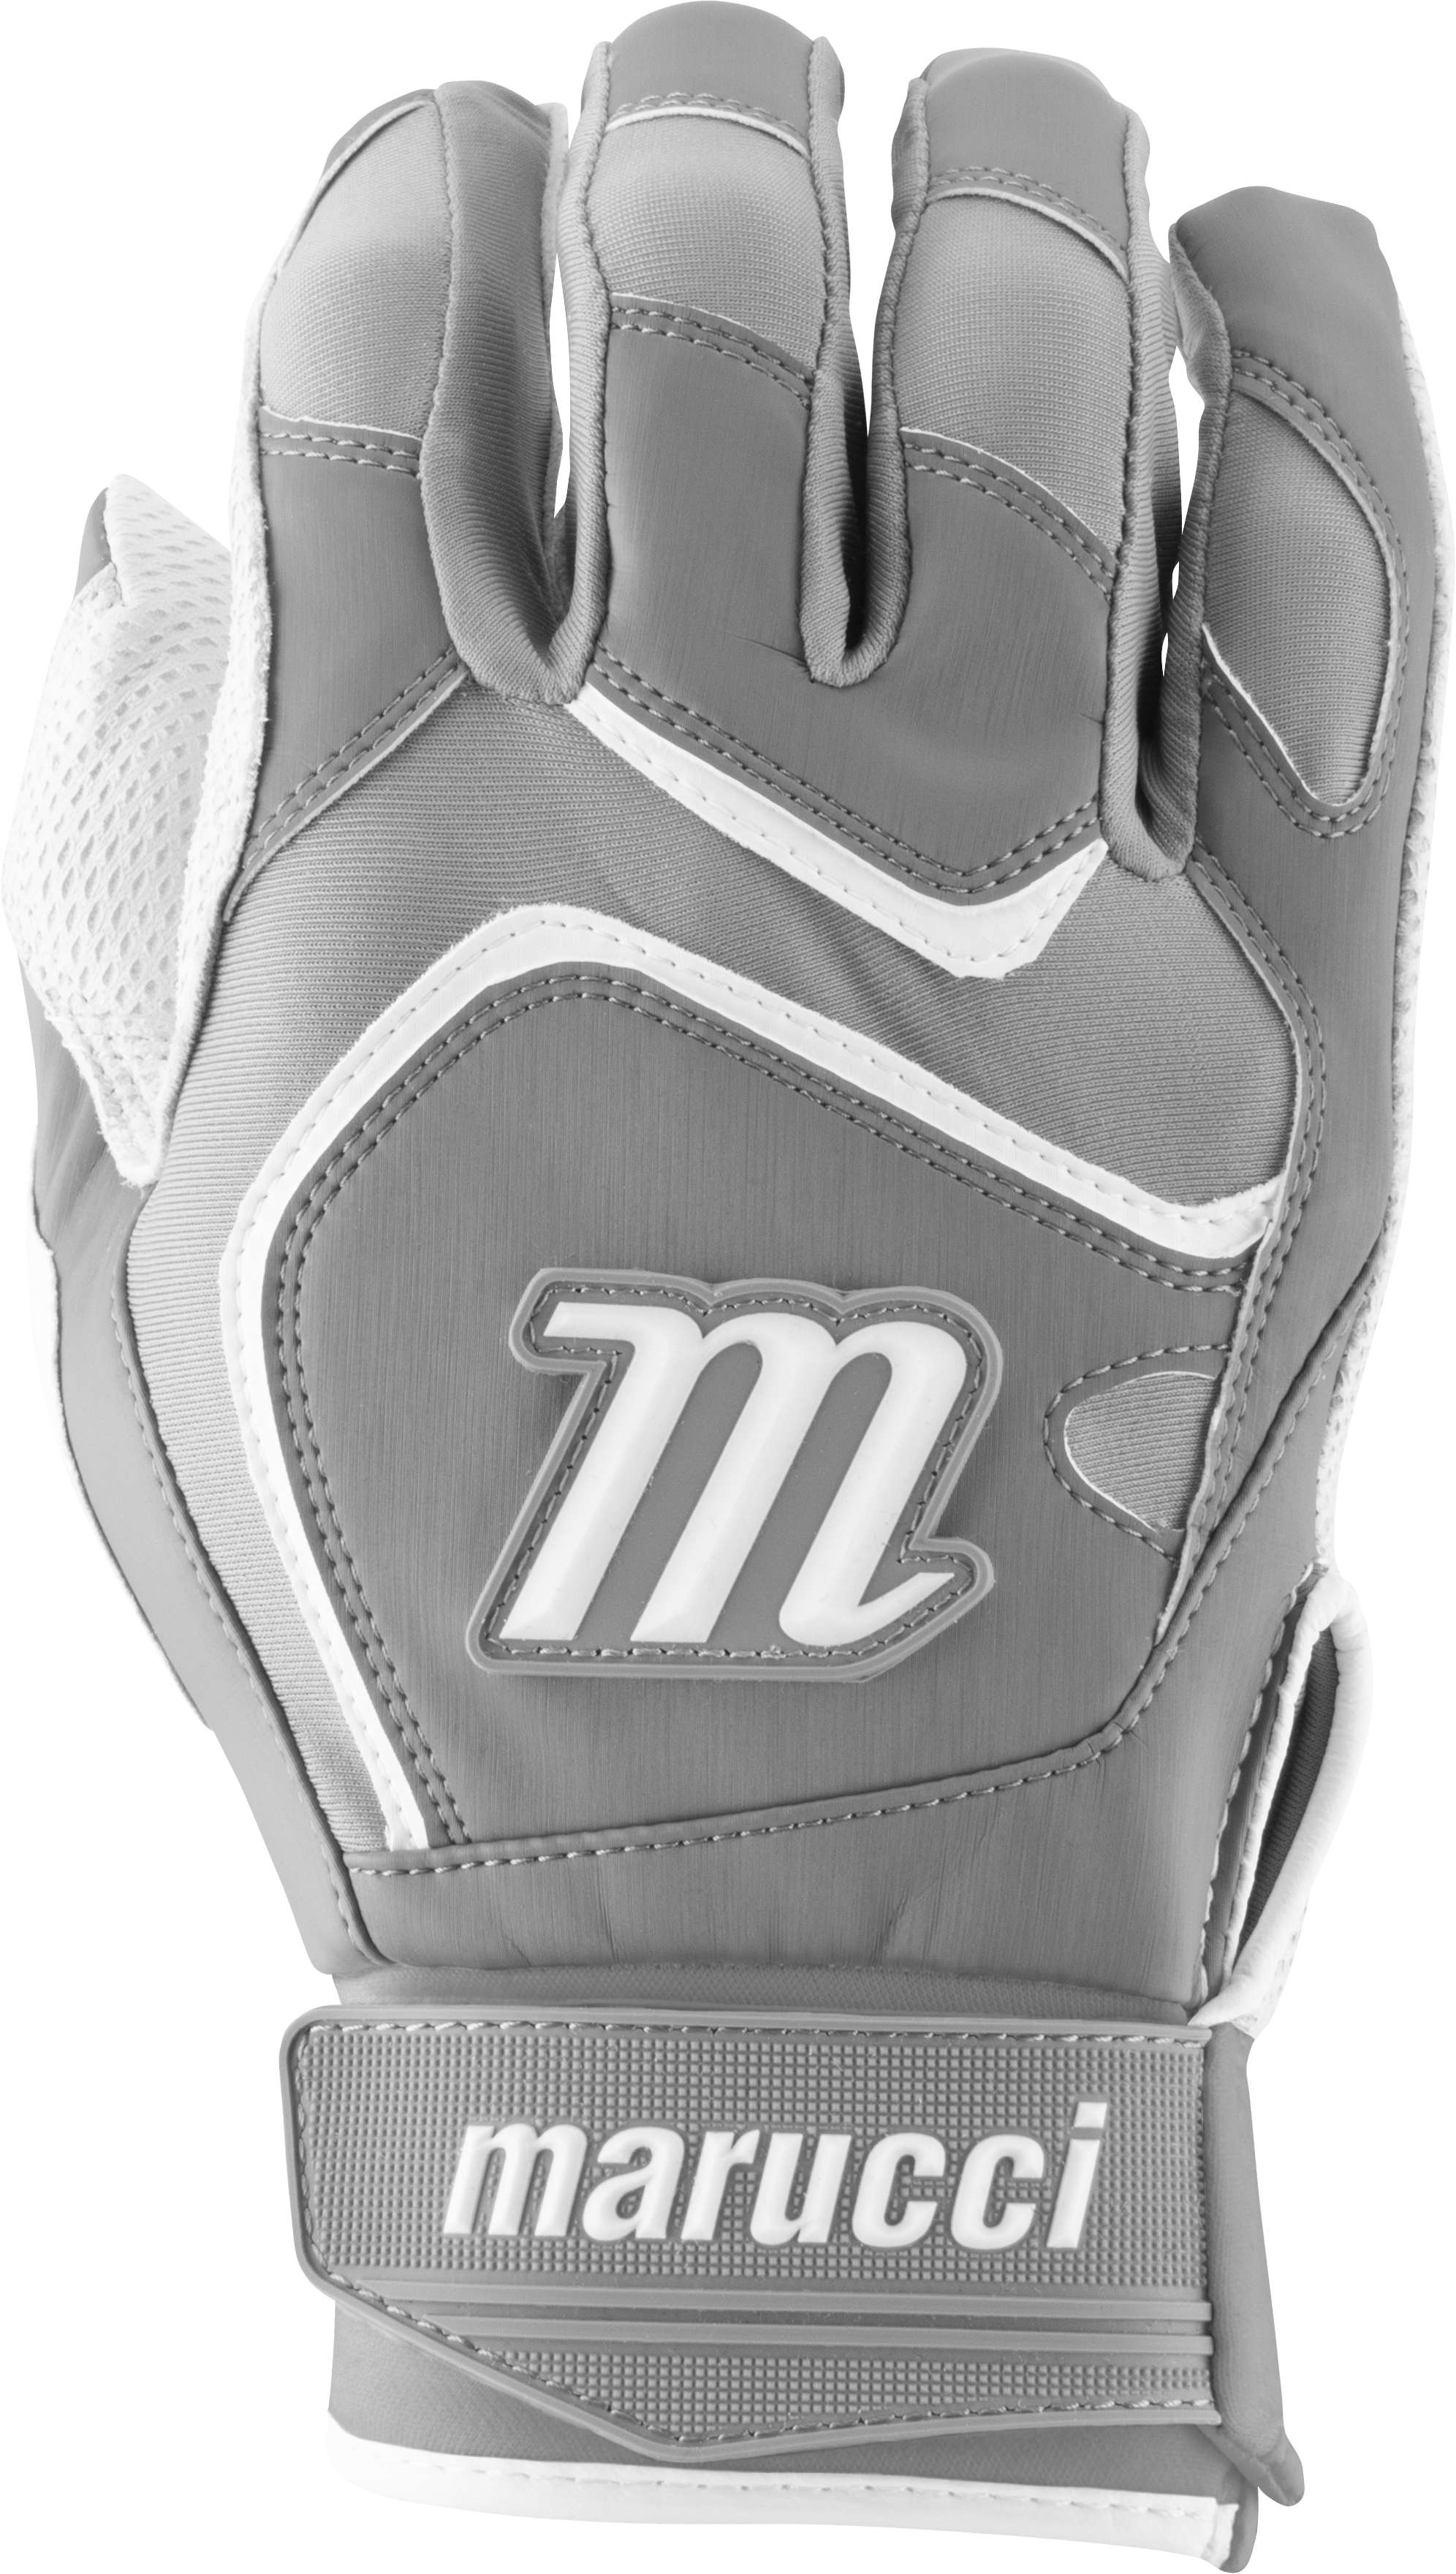 marucci-signature-batting-gloves-mbgsgn2-1-pair-white-grey-adult-large MBGSGN2-WGY-AL Marucci 849817096789 2019 Model MBGSGN2 Consistency And Craftsmanship Commitment To Quality And Understanding